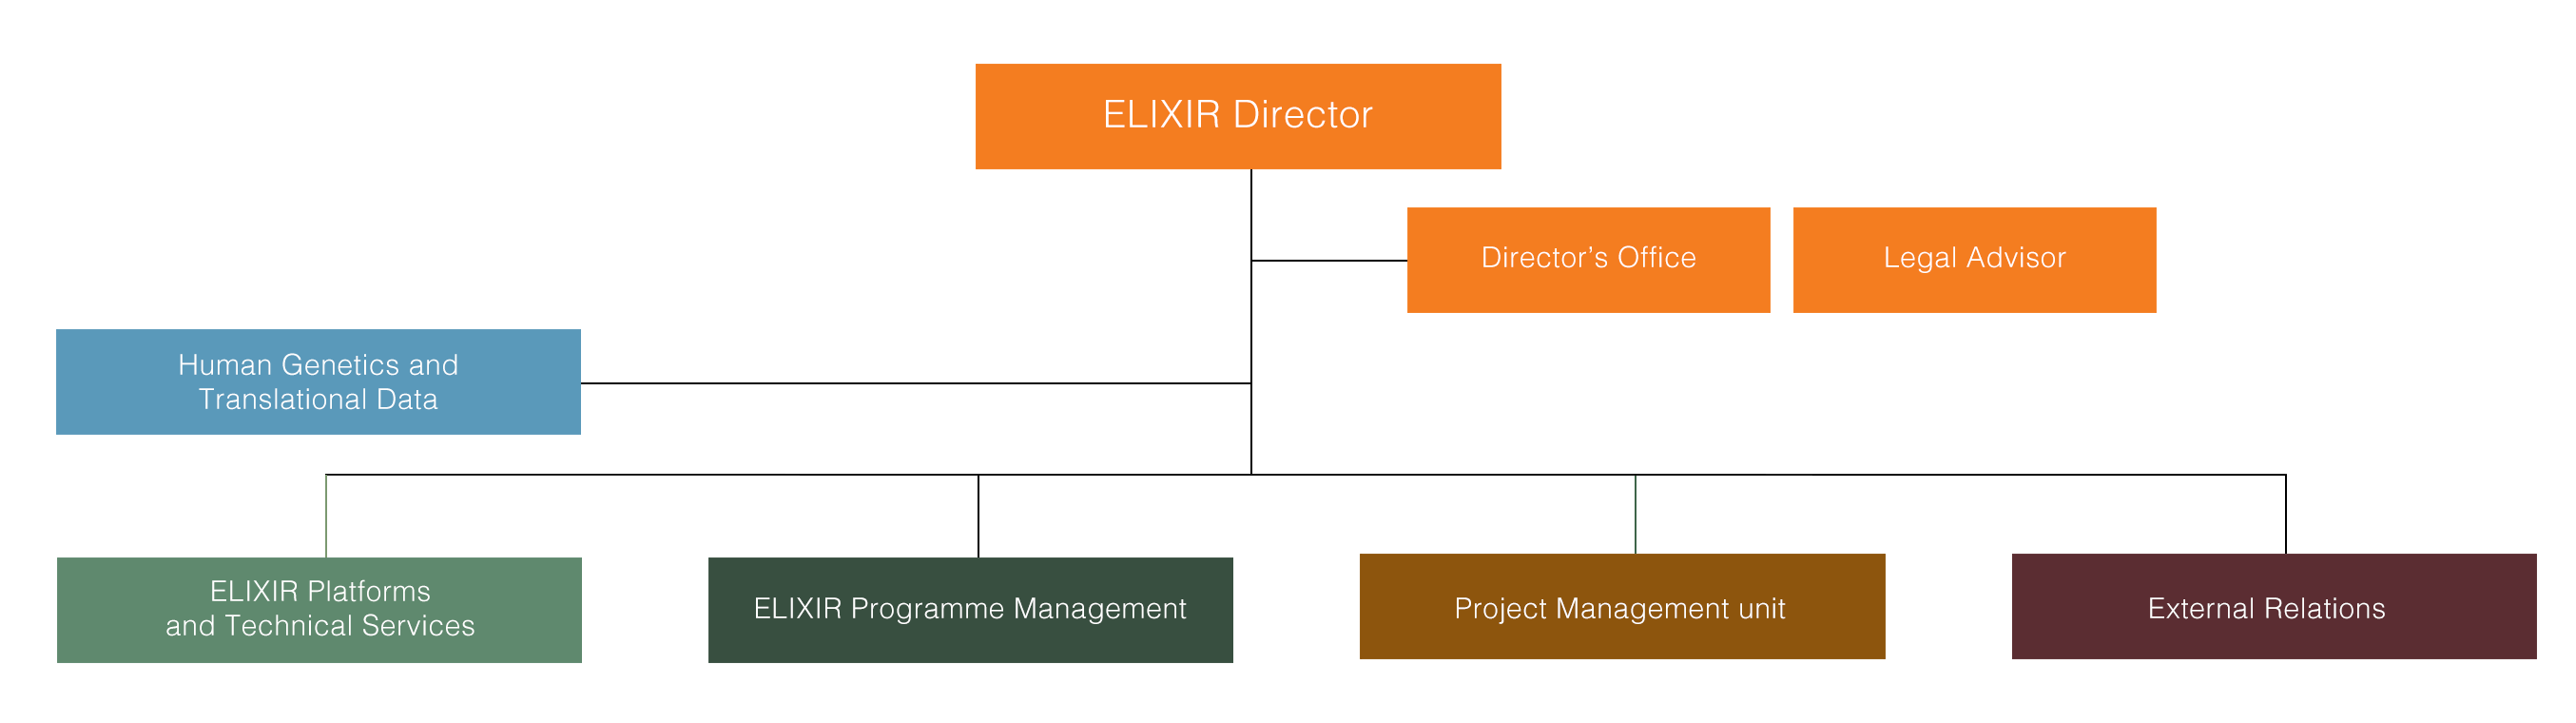 Organogram of the ELIXIR Hub